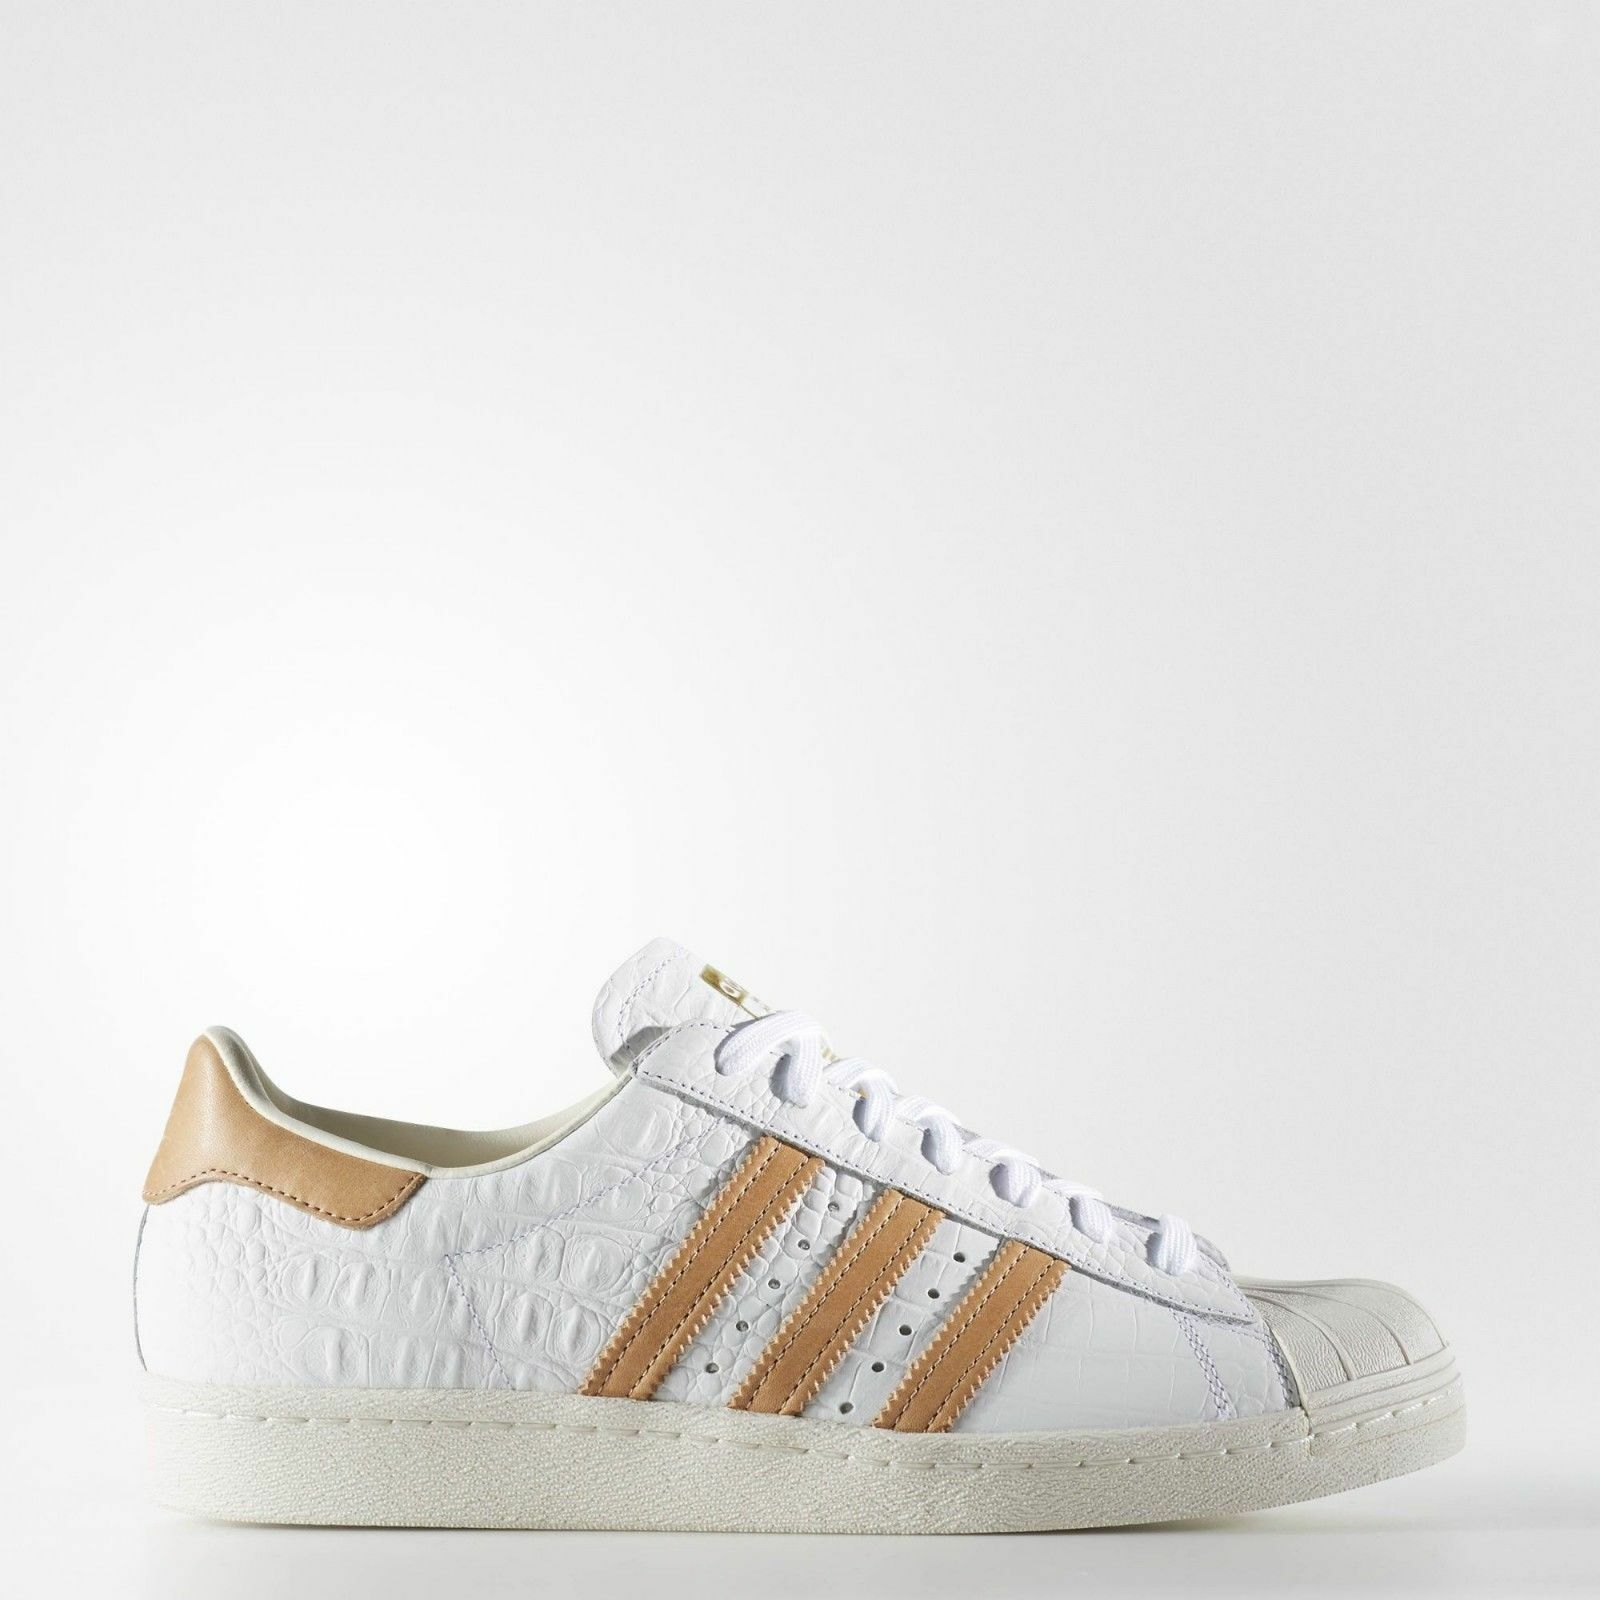 New mens adidas superstar 80s shoes white cloud gold shell toe bb2229 men's